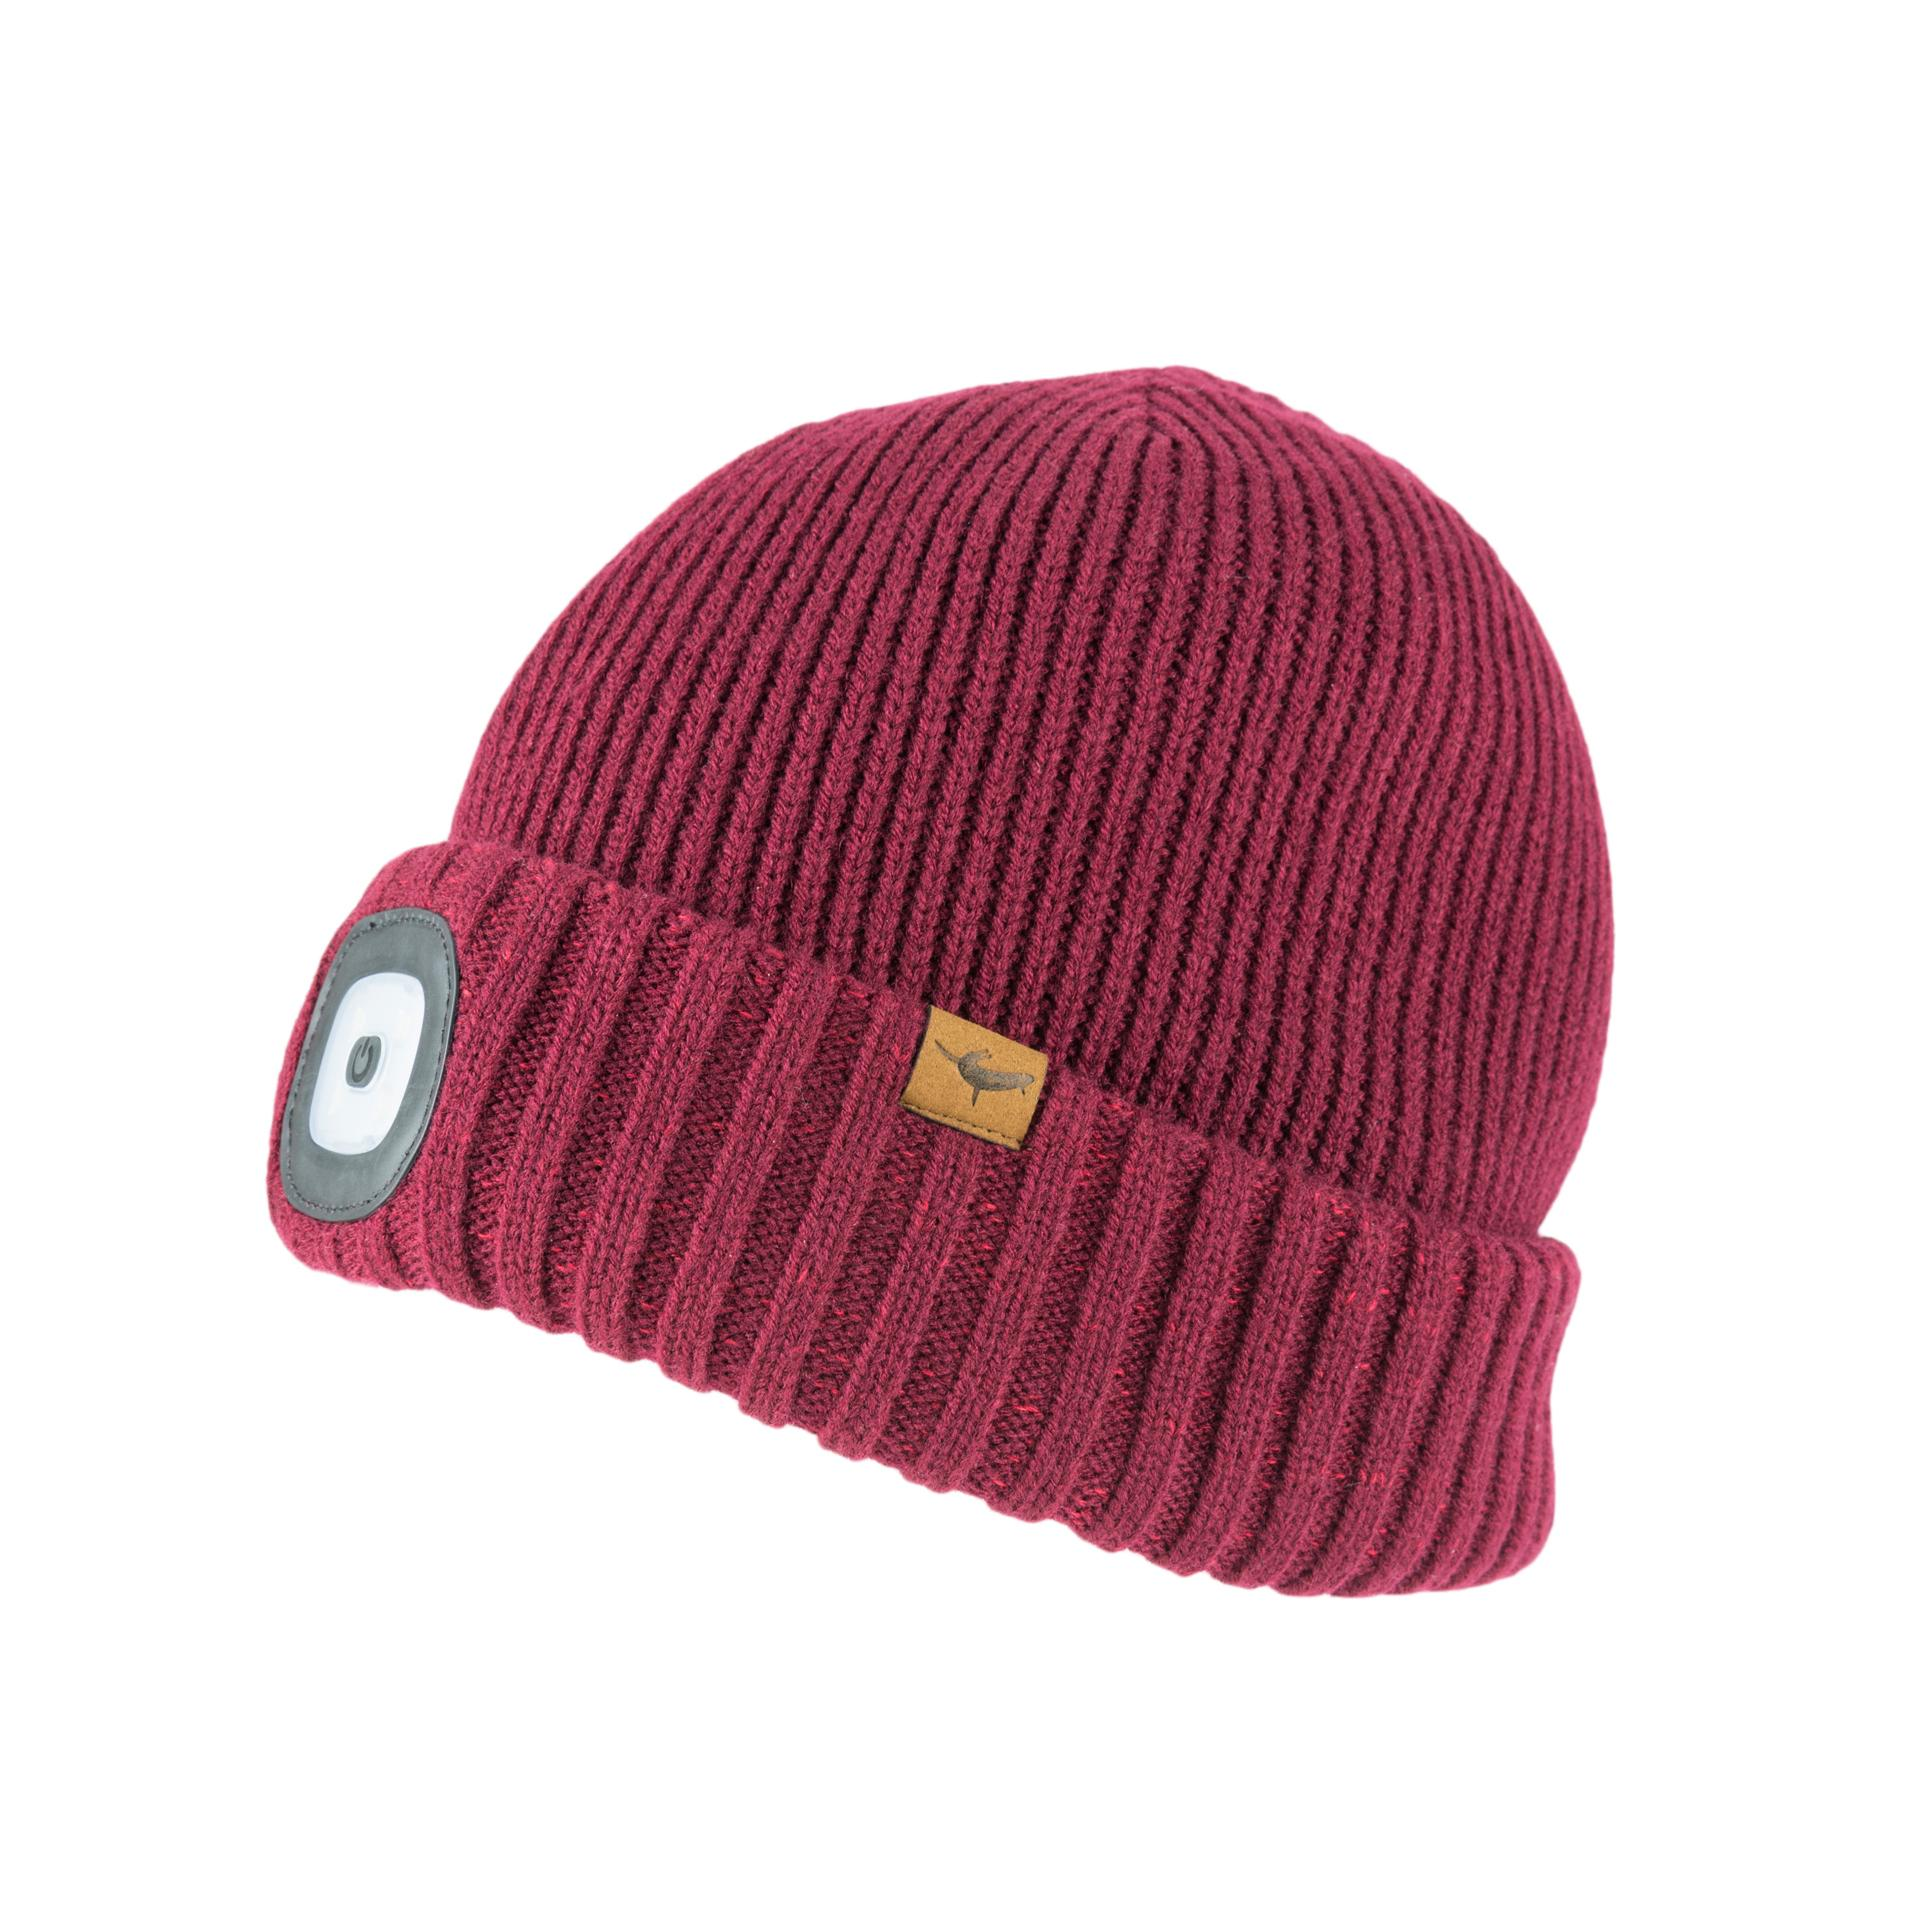 Afbeelding Sealskinz Casual muts waterdicht voor Heren Rood  / Waterproof Cold Weather LED Roll Cuff Beanie Red